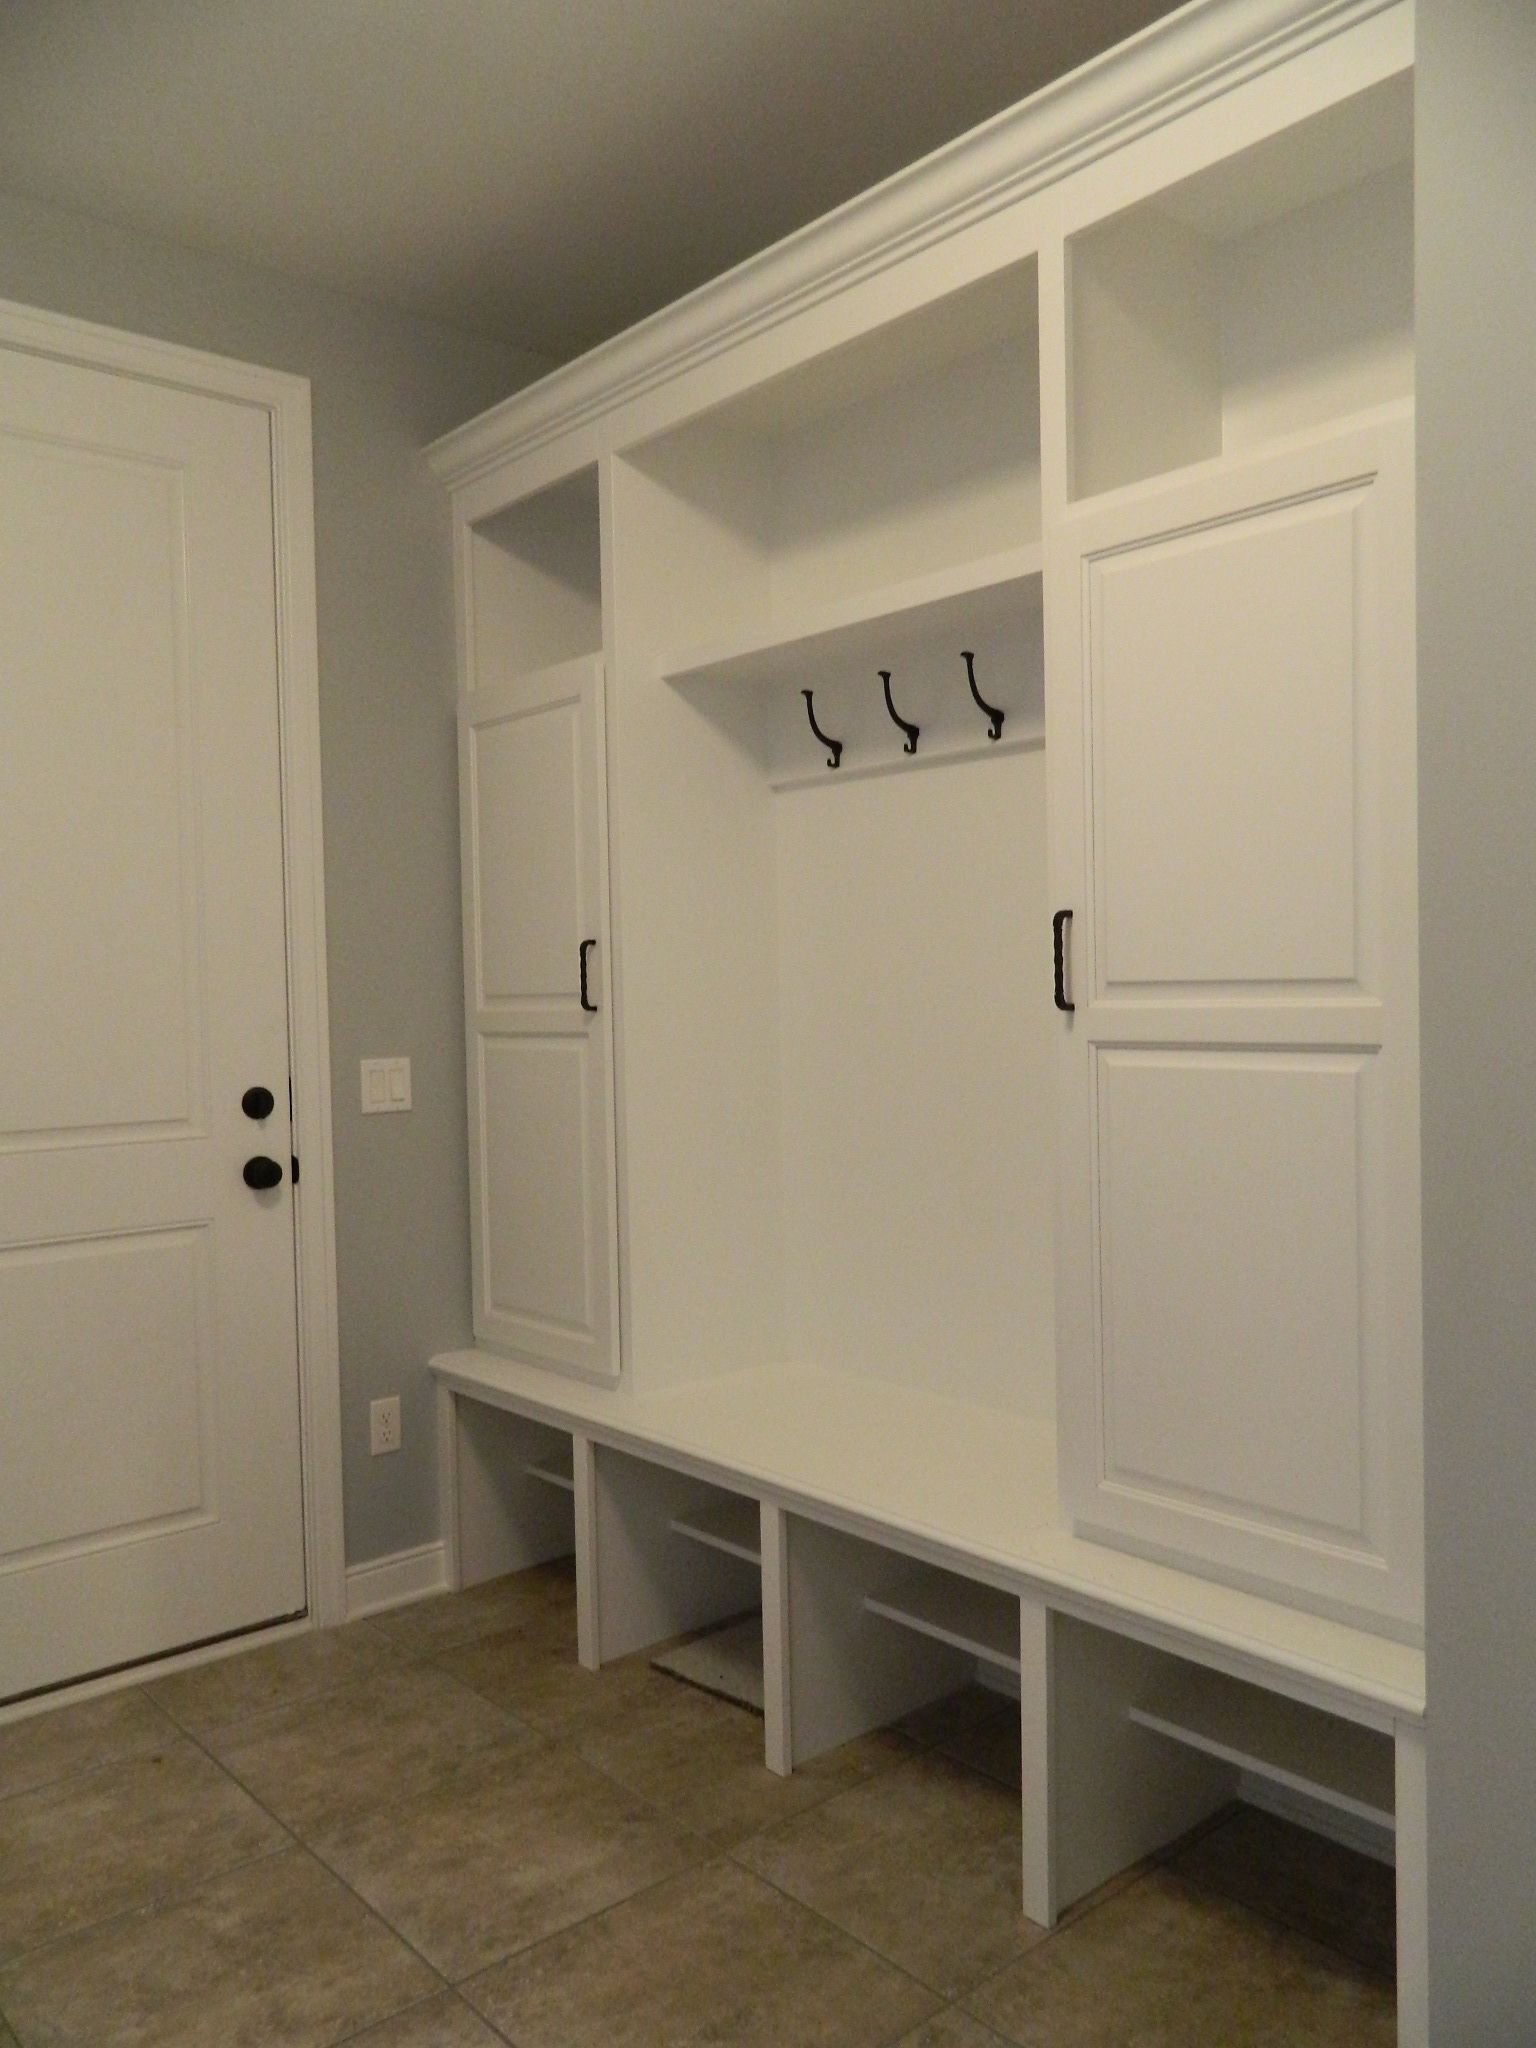 Ceramic Tile Custom Built In Painted White With Crown Molding Oil